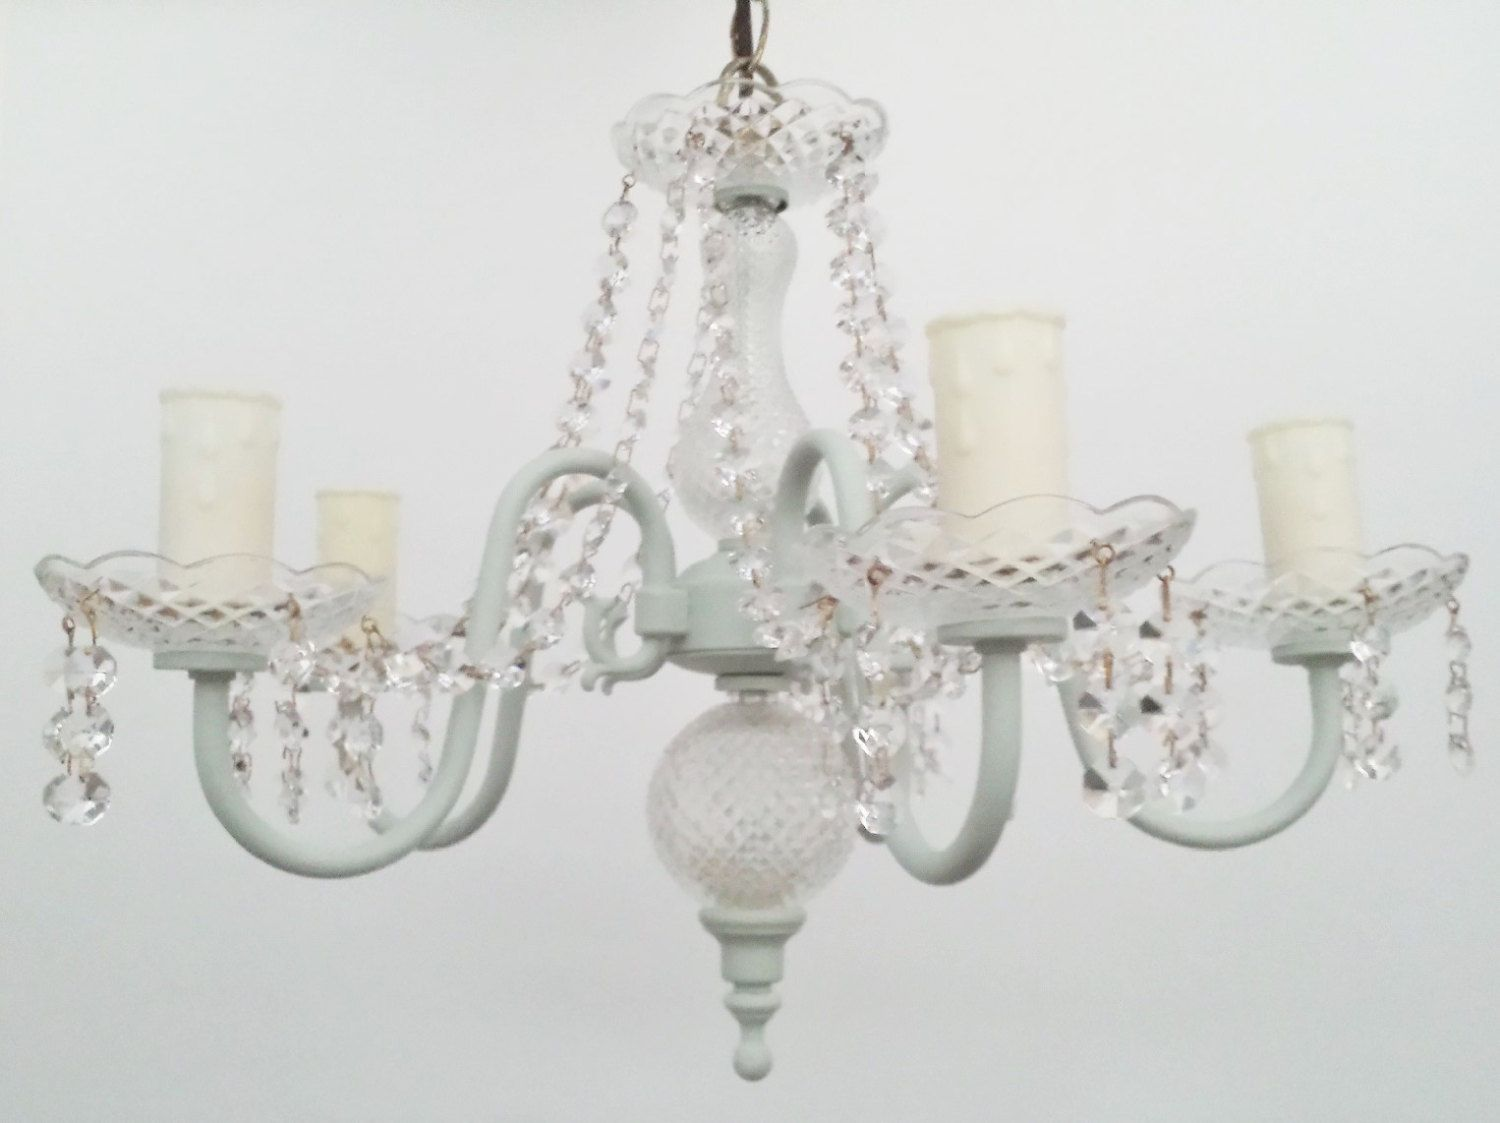 Crystal chandelier lighting heavenly duck egg leaded crystal upcycled lighting 1950s marie therese pendant lighting fixture chalk paint by